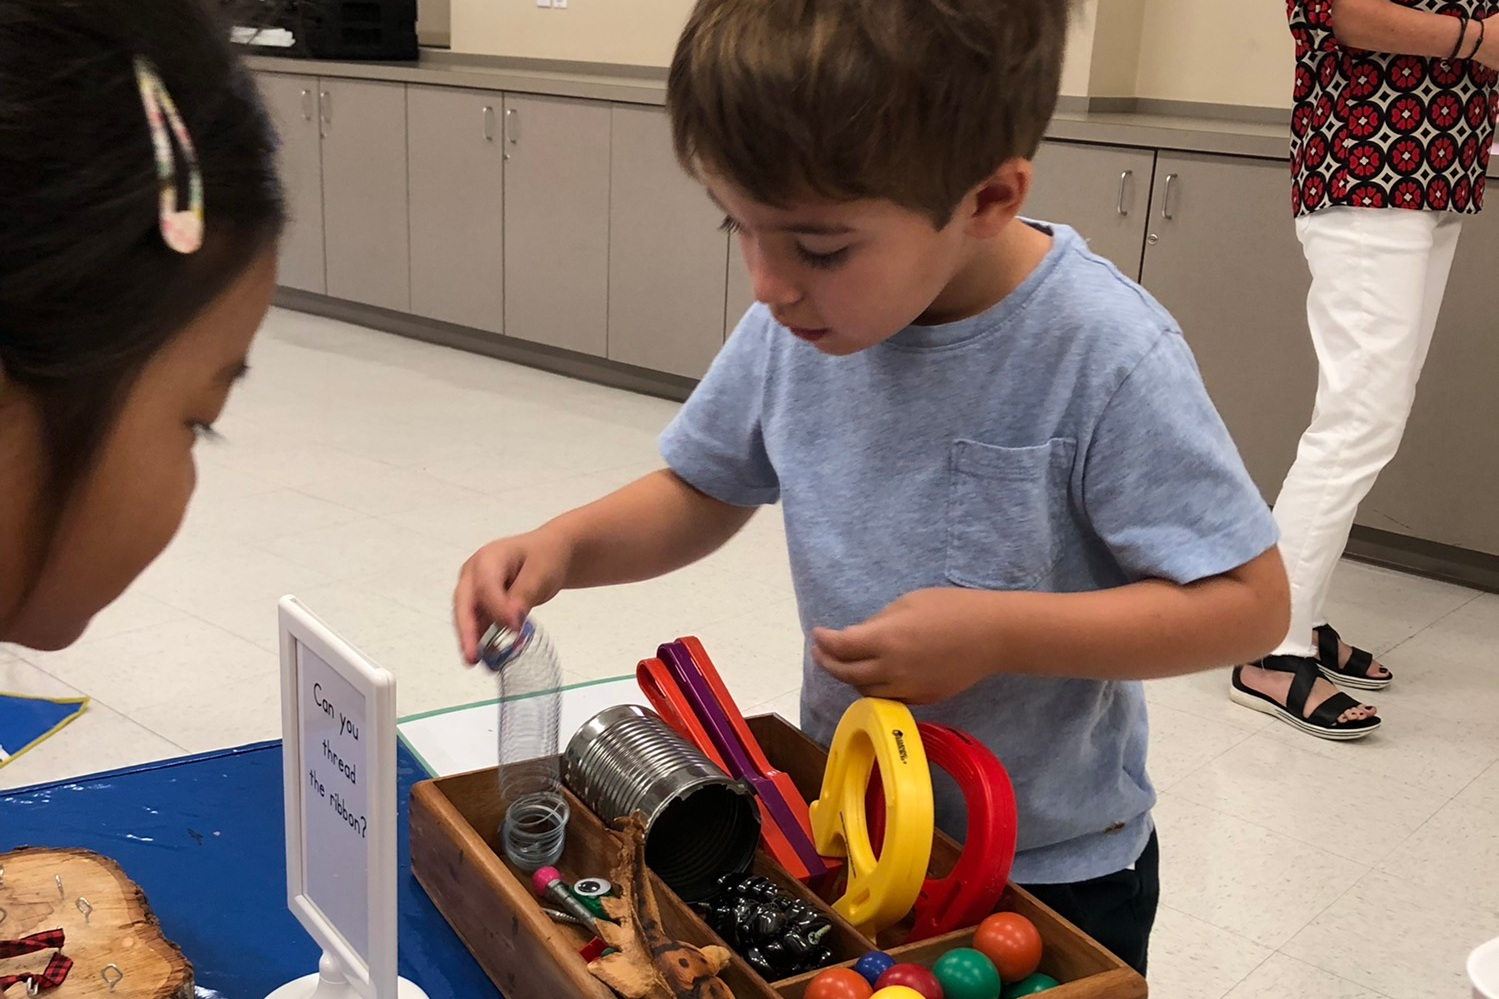 Enrichment Classes - We offer several different enrichment classes including art, science, motor skills, music, and chapel.